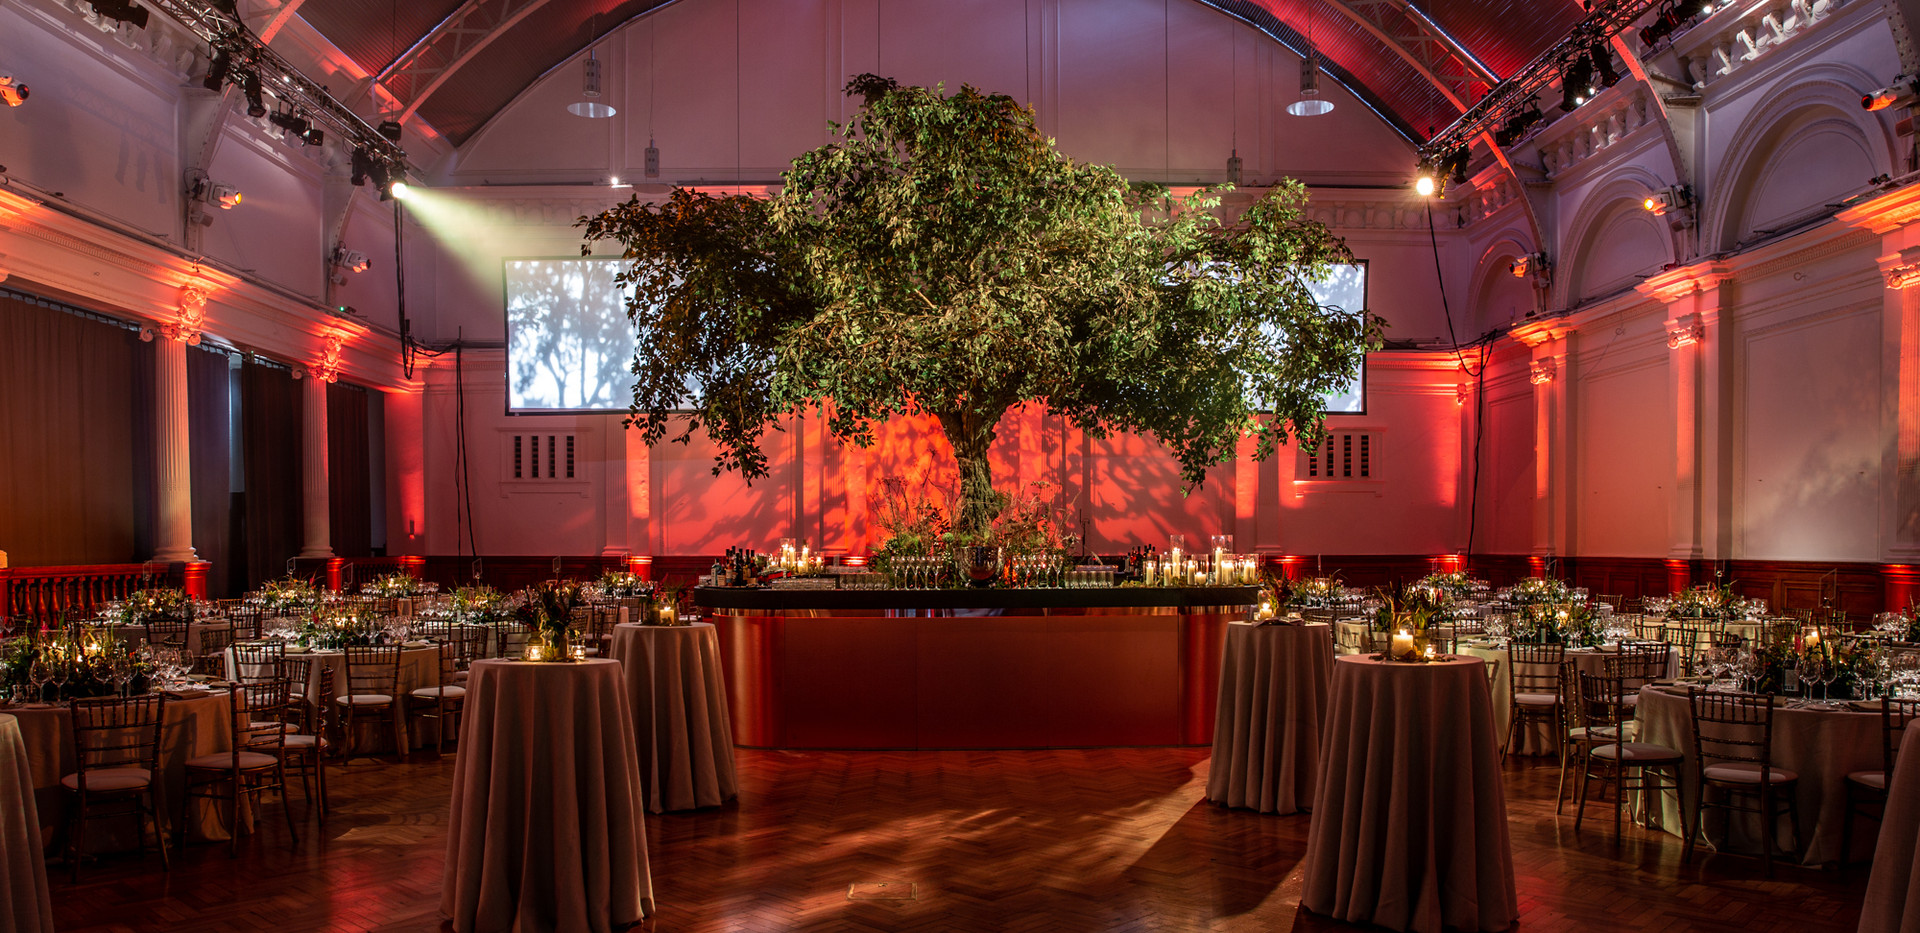 Copper island bar with tree display.jpg